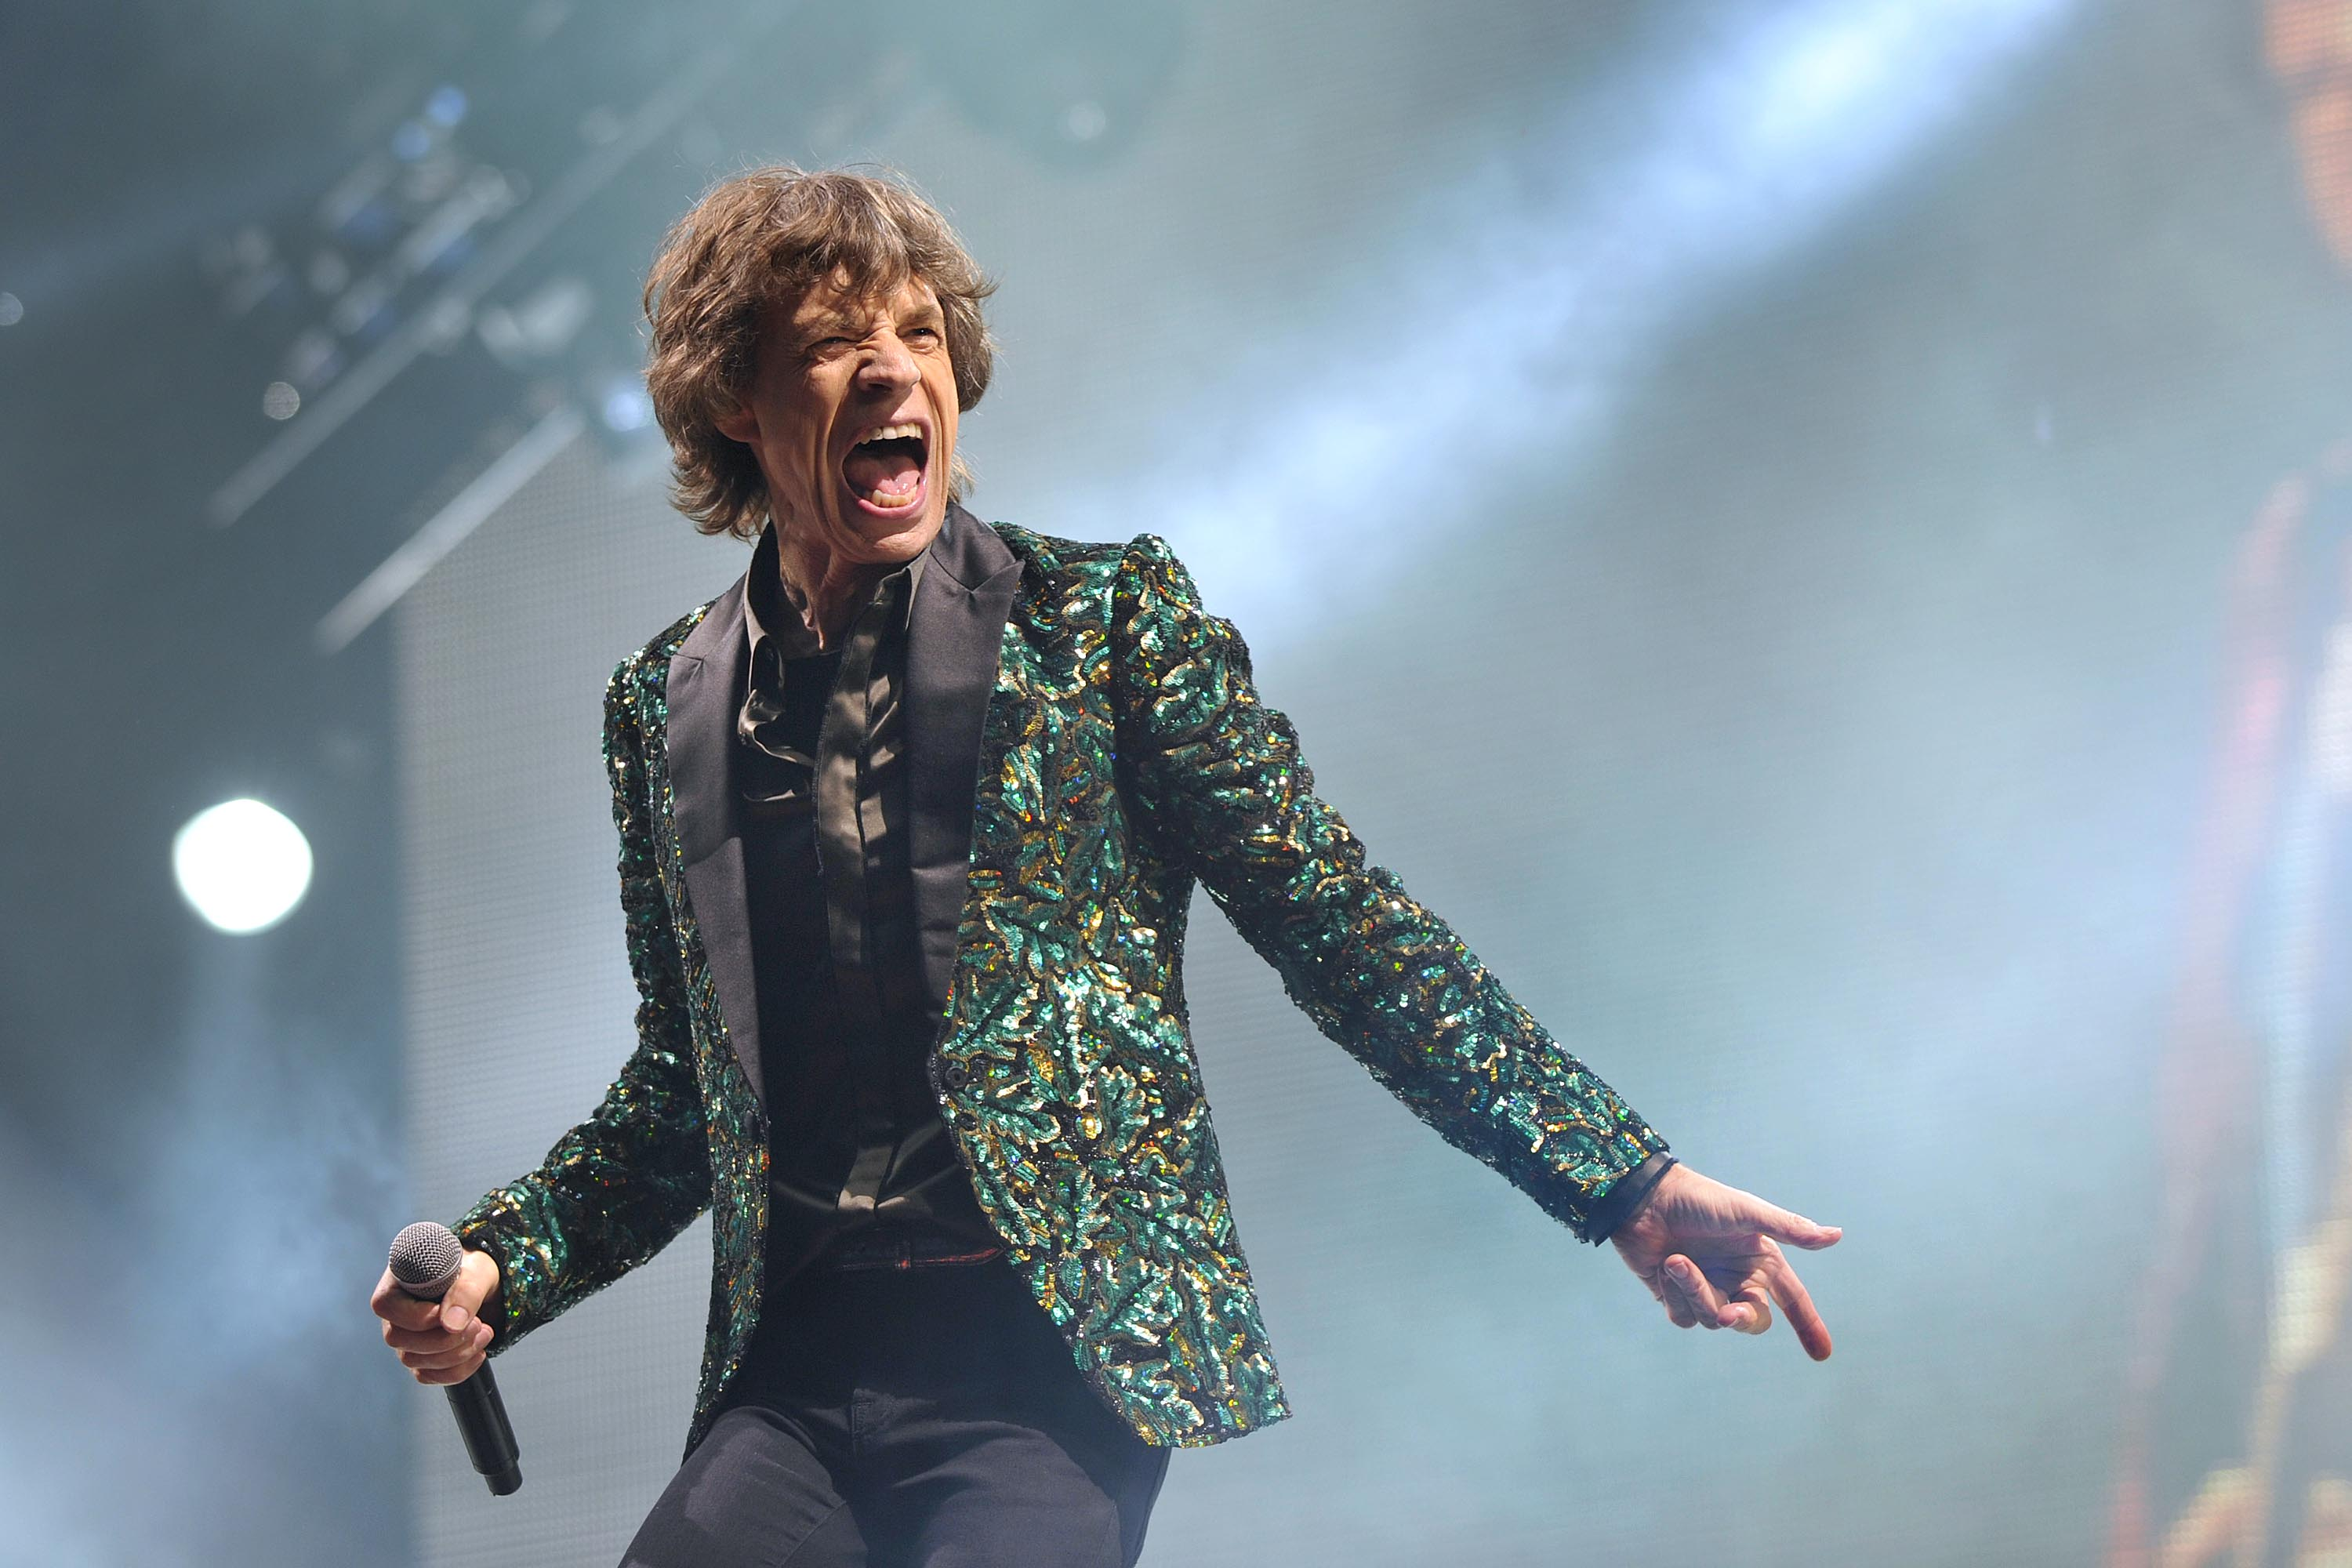 Mick Jagger performing with the Rolling Stones at Glastonbury 2013. Photographer: Sarah Jeynes. © BBC.